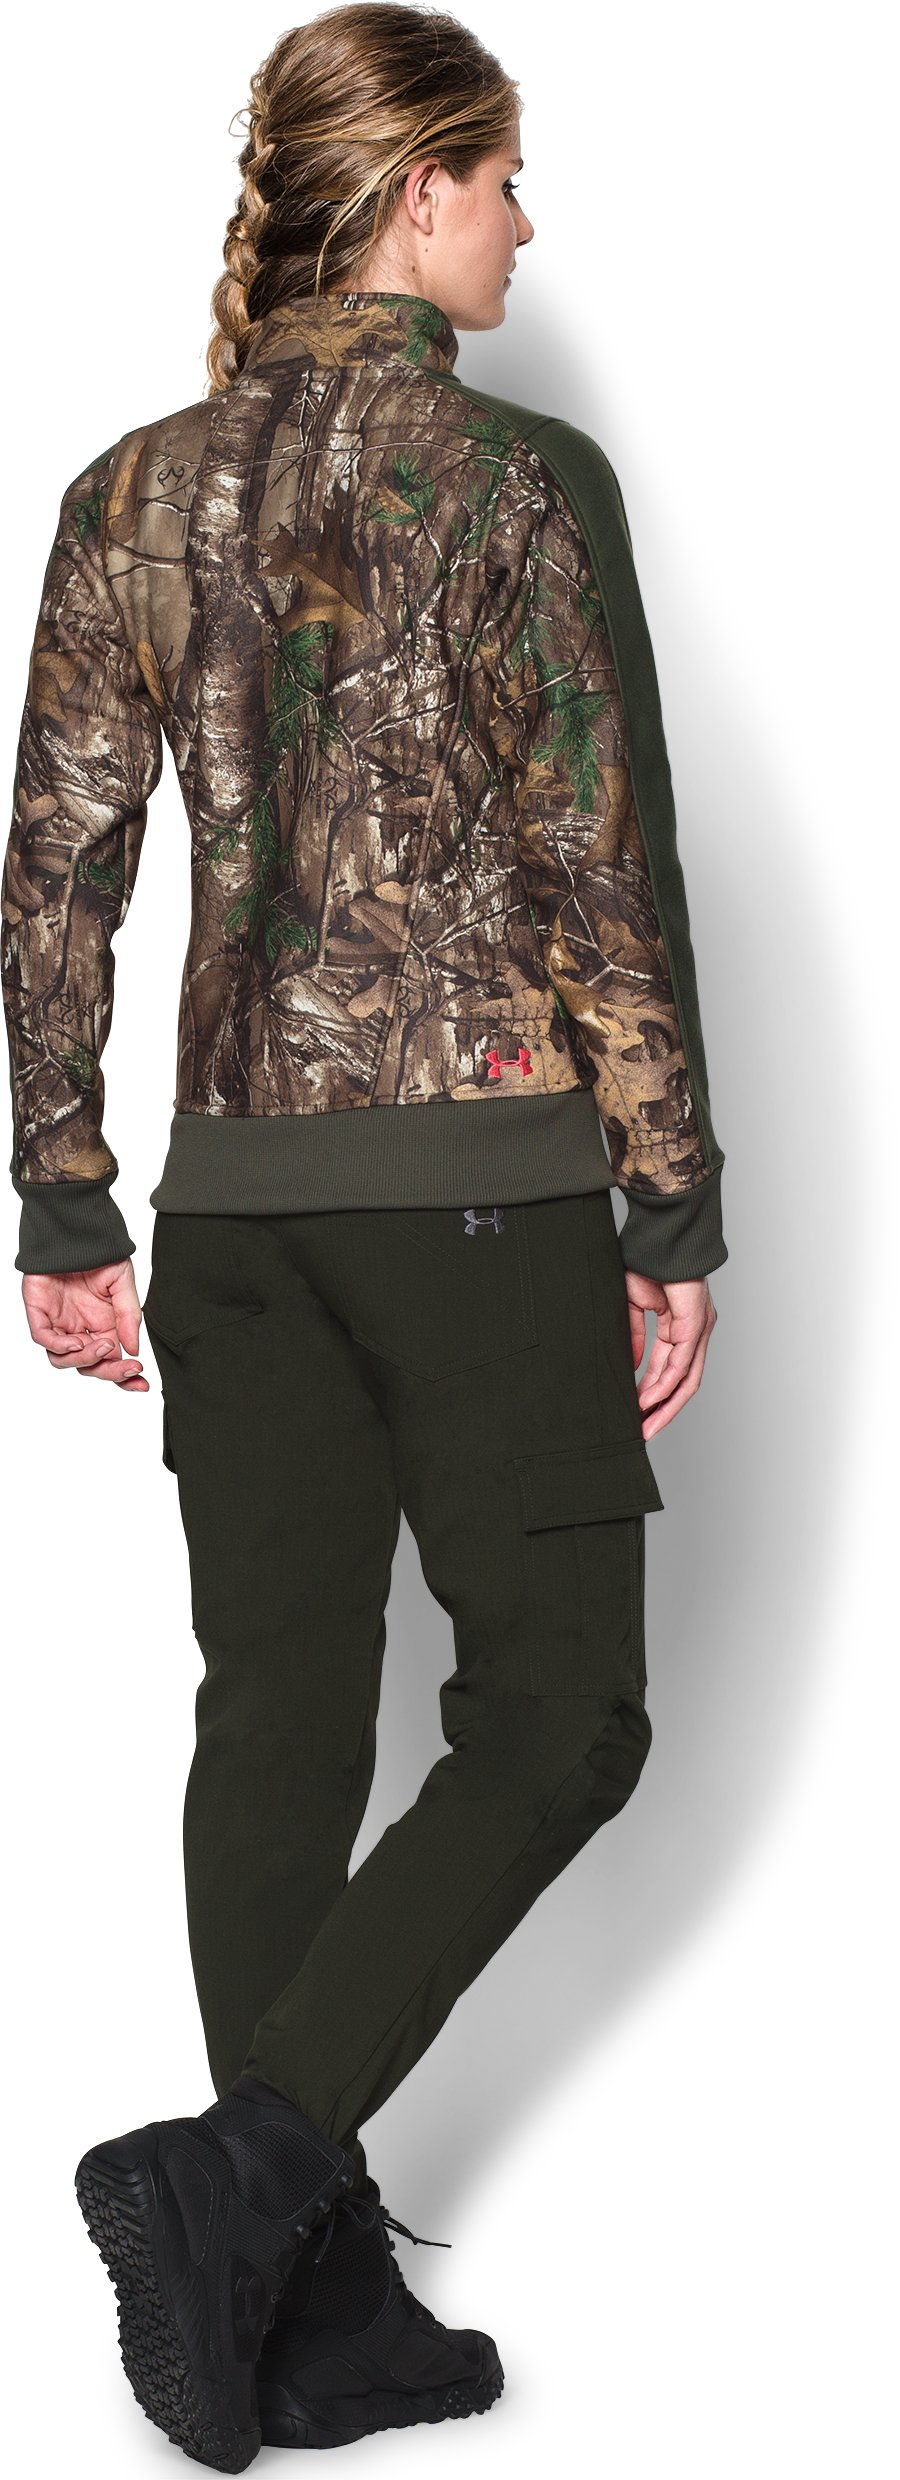 Women's Ayton Fleece Jacket, REALTREE AP-XTRA, Back